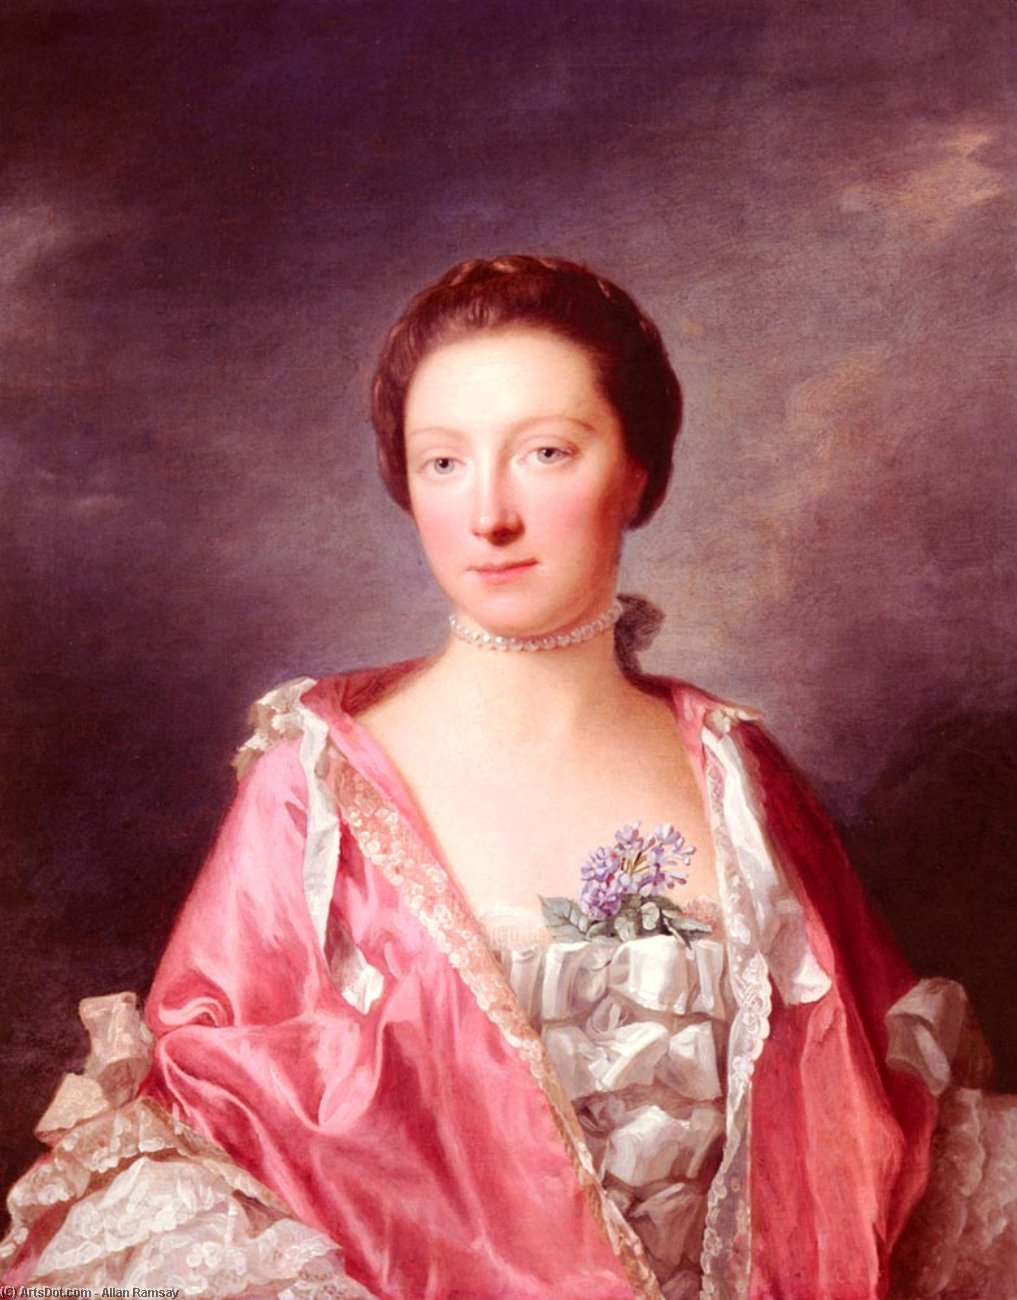 Wikioo.org - The Encyclopedia of Fine Arts - Painting, Artwork by Allan Ramsay - Portrait Of Elizabeth Gunning, Duchess Of Argyll